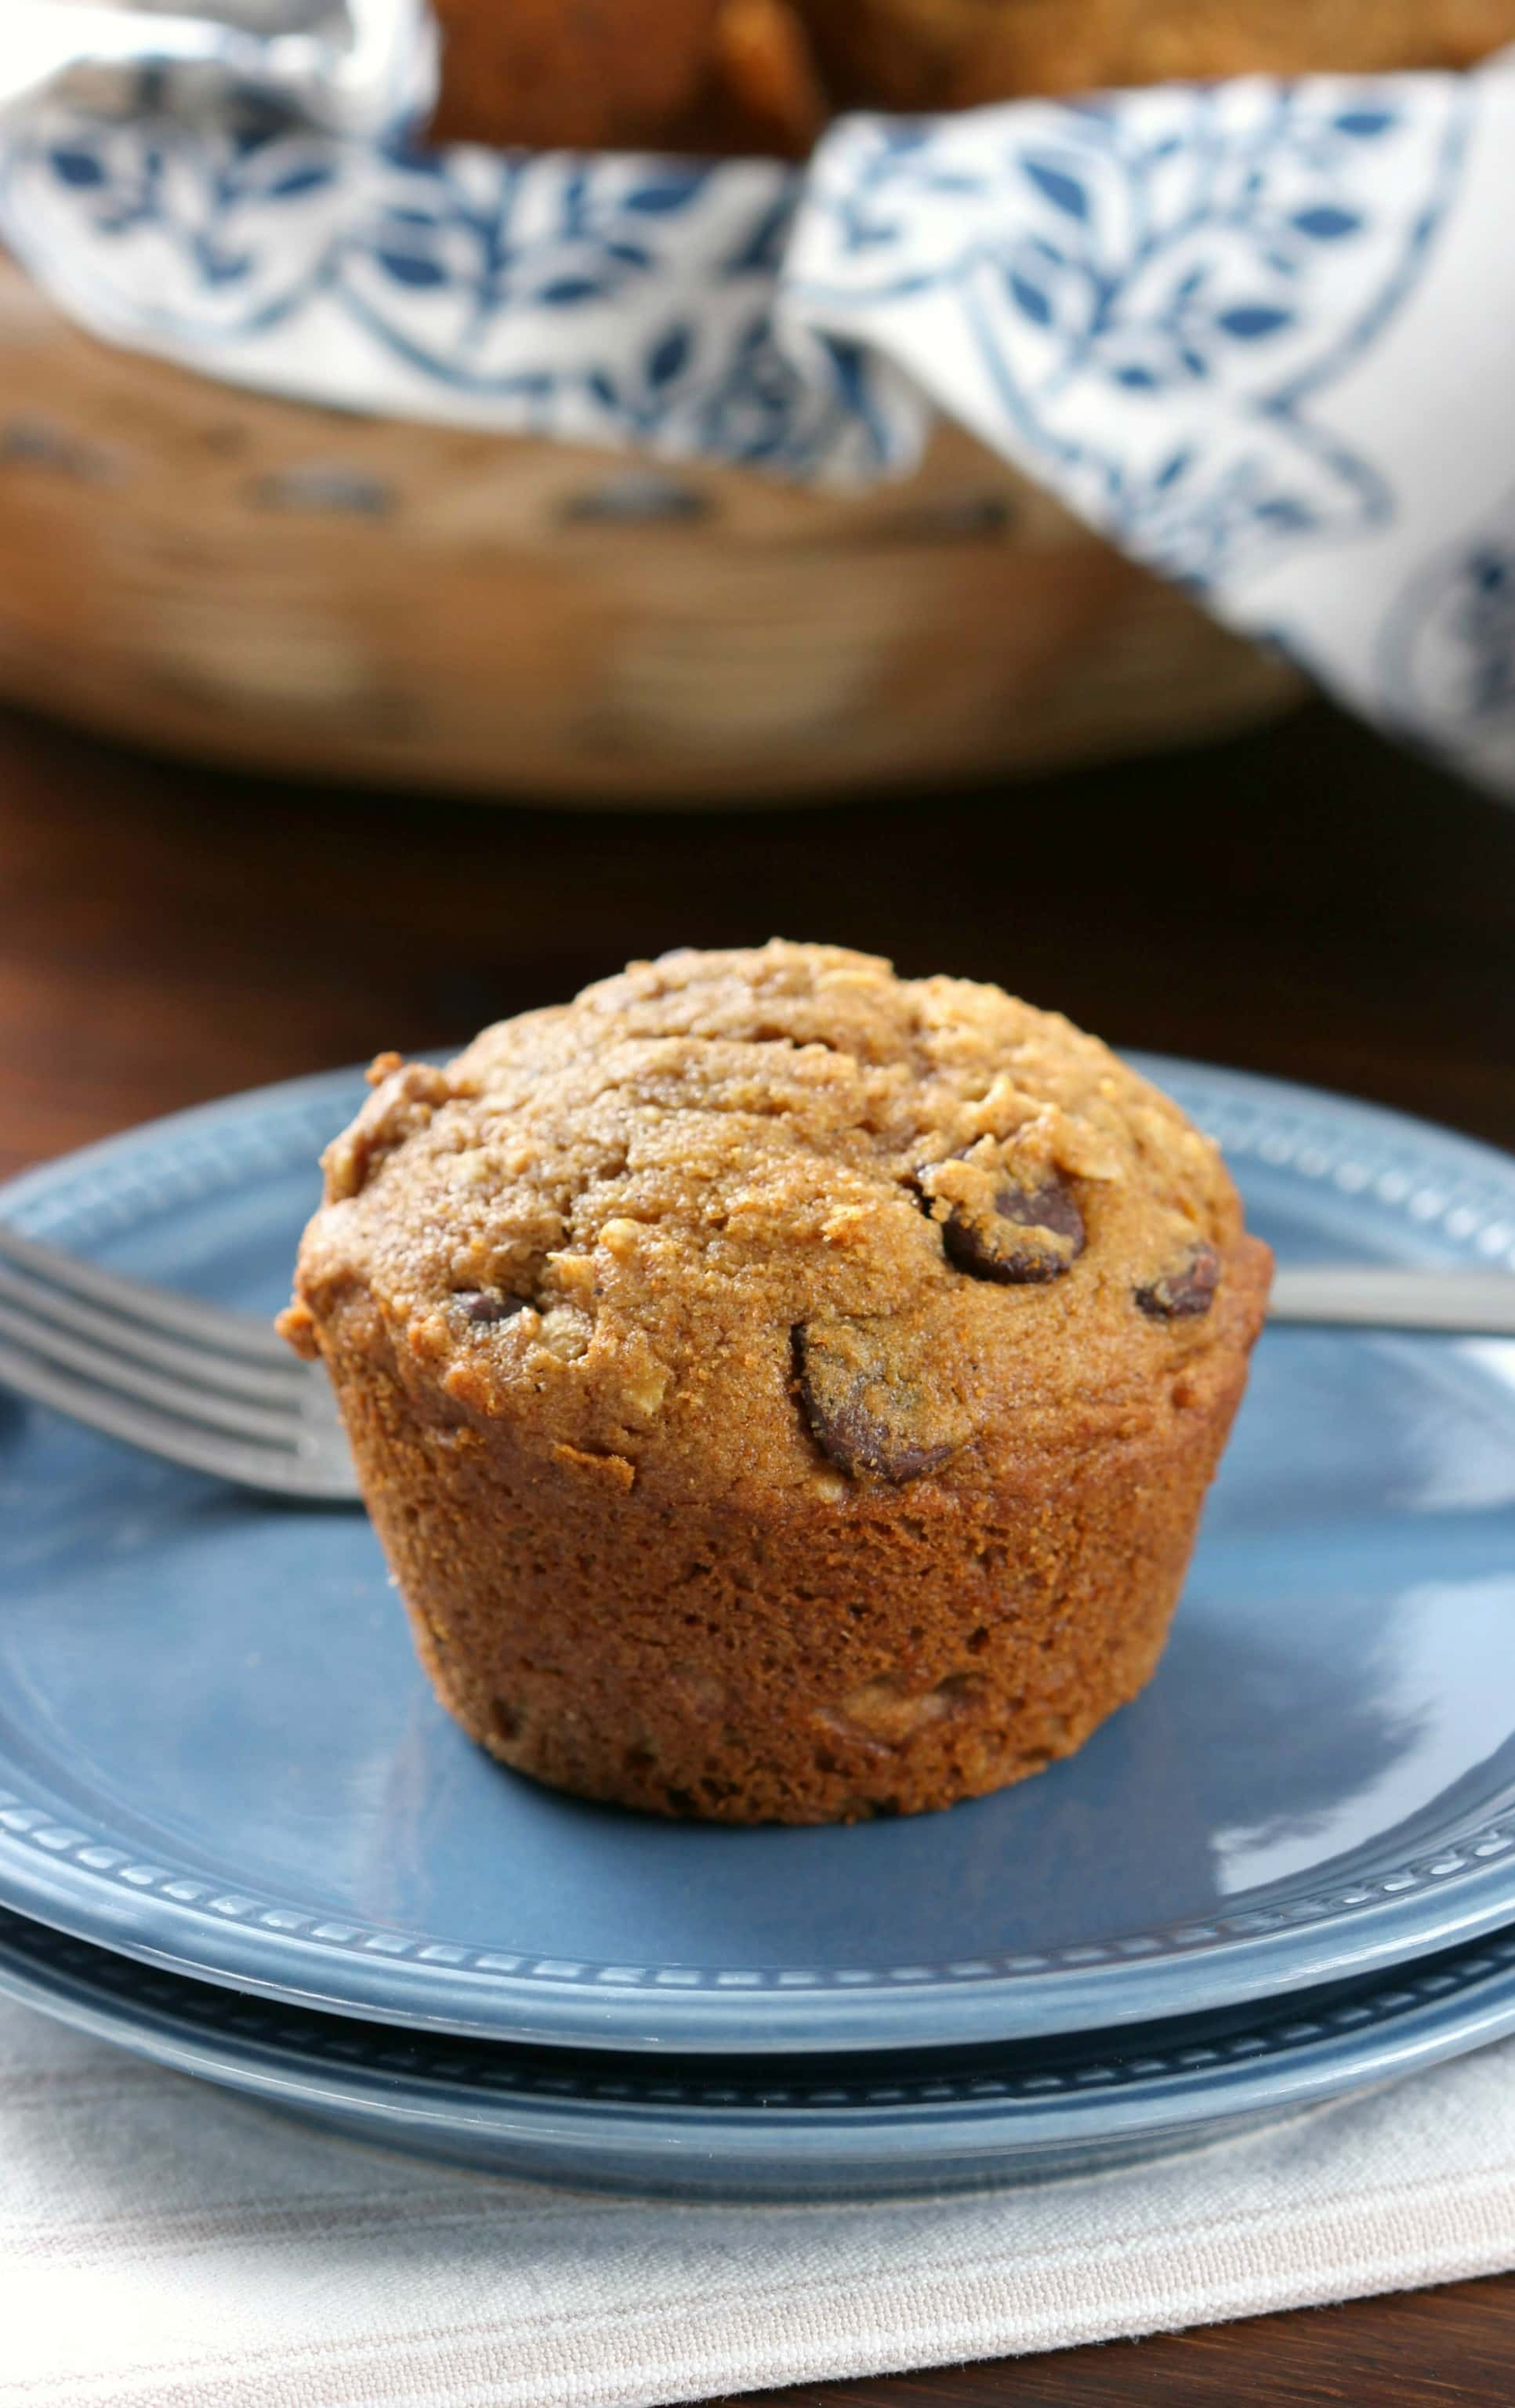 Easy One Bowl Chocolate Chip Pumpkin Muffins Recipe from A Kitchen Addiction